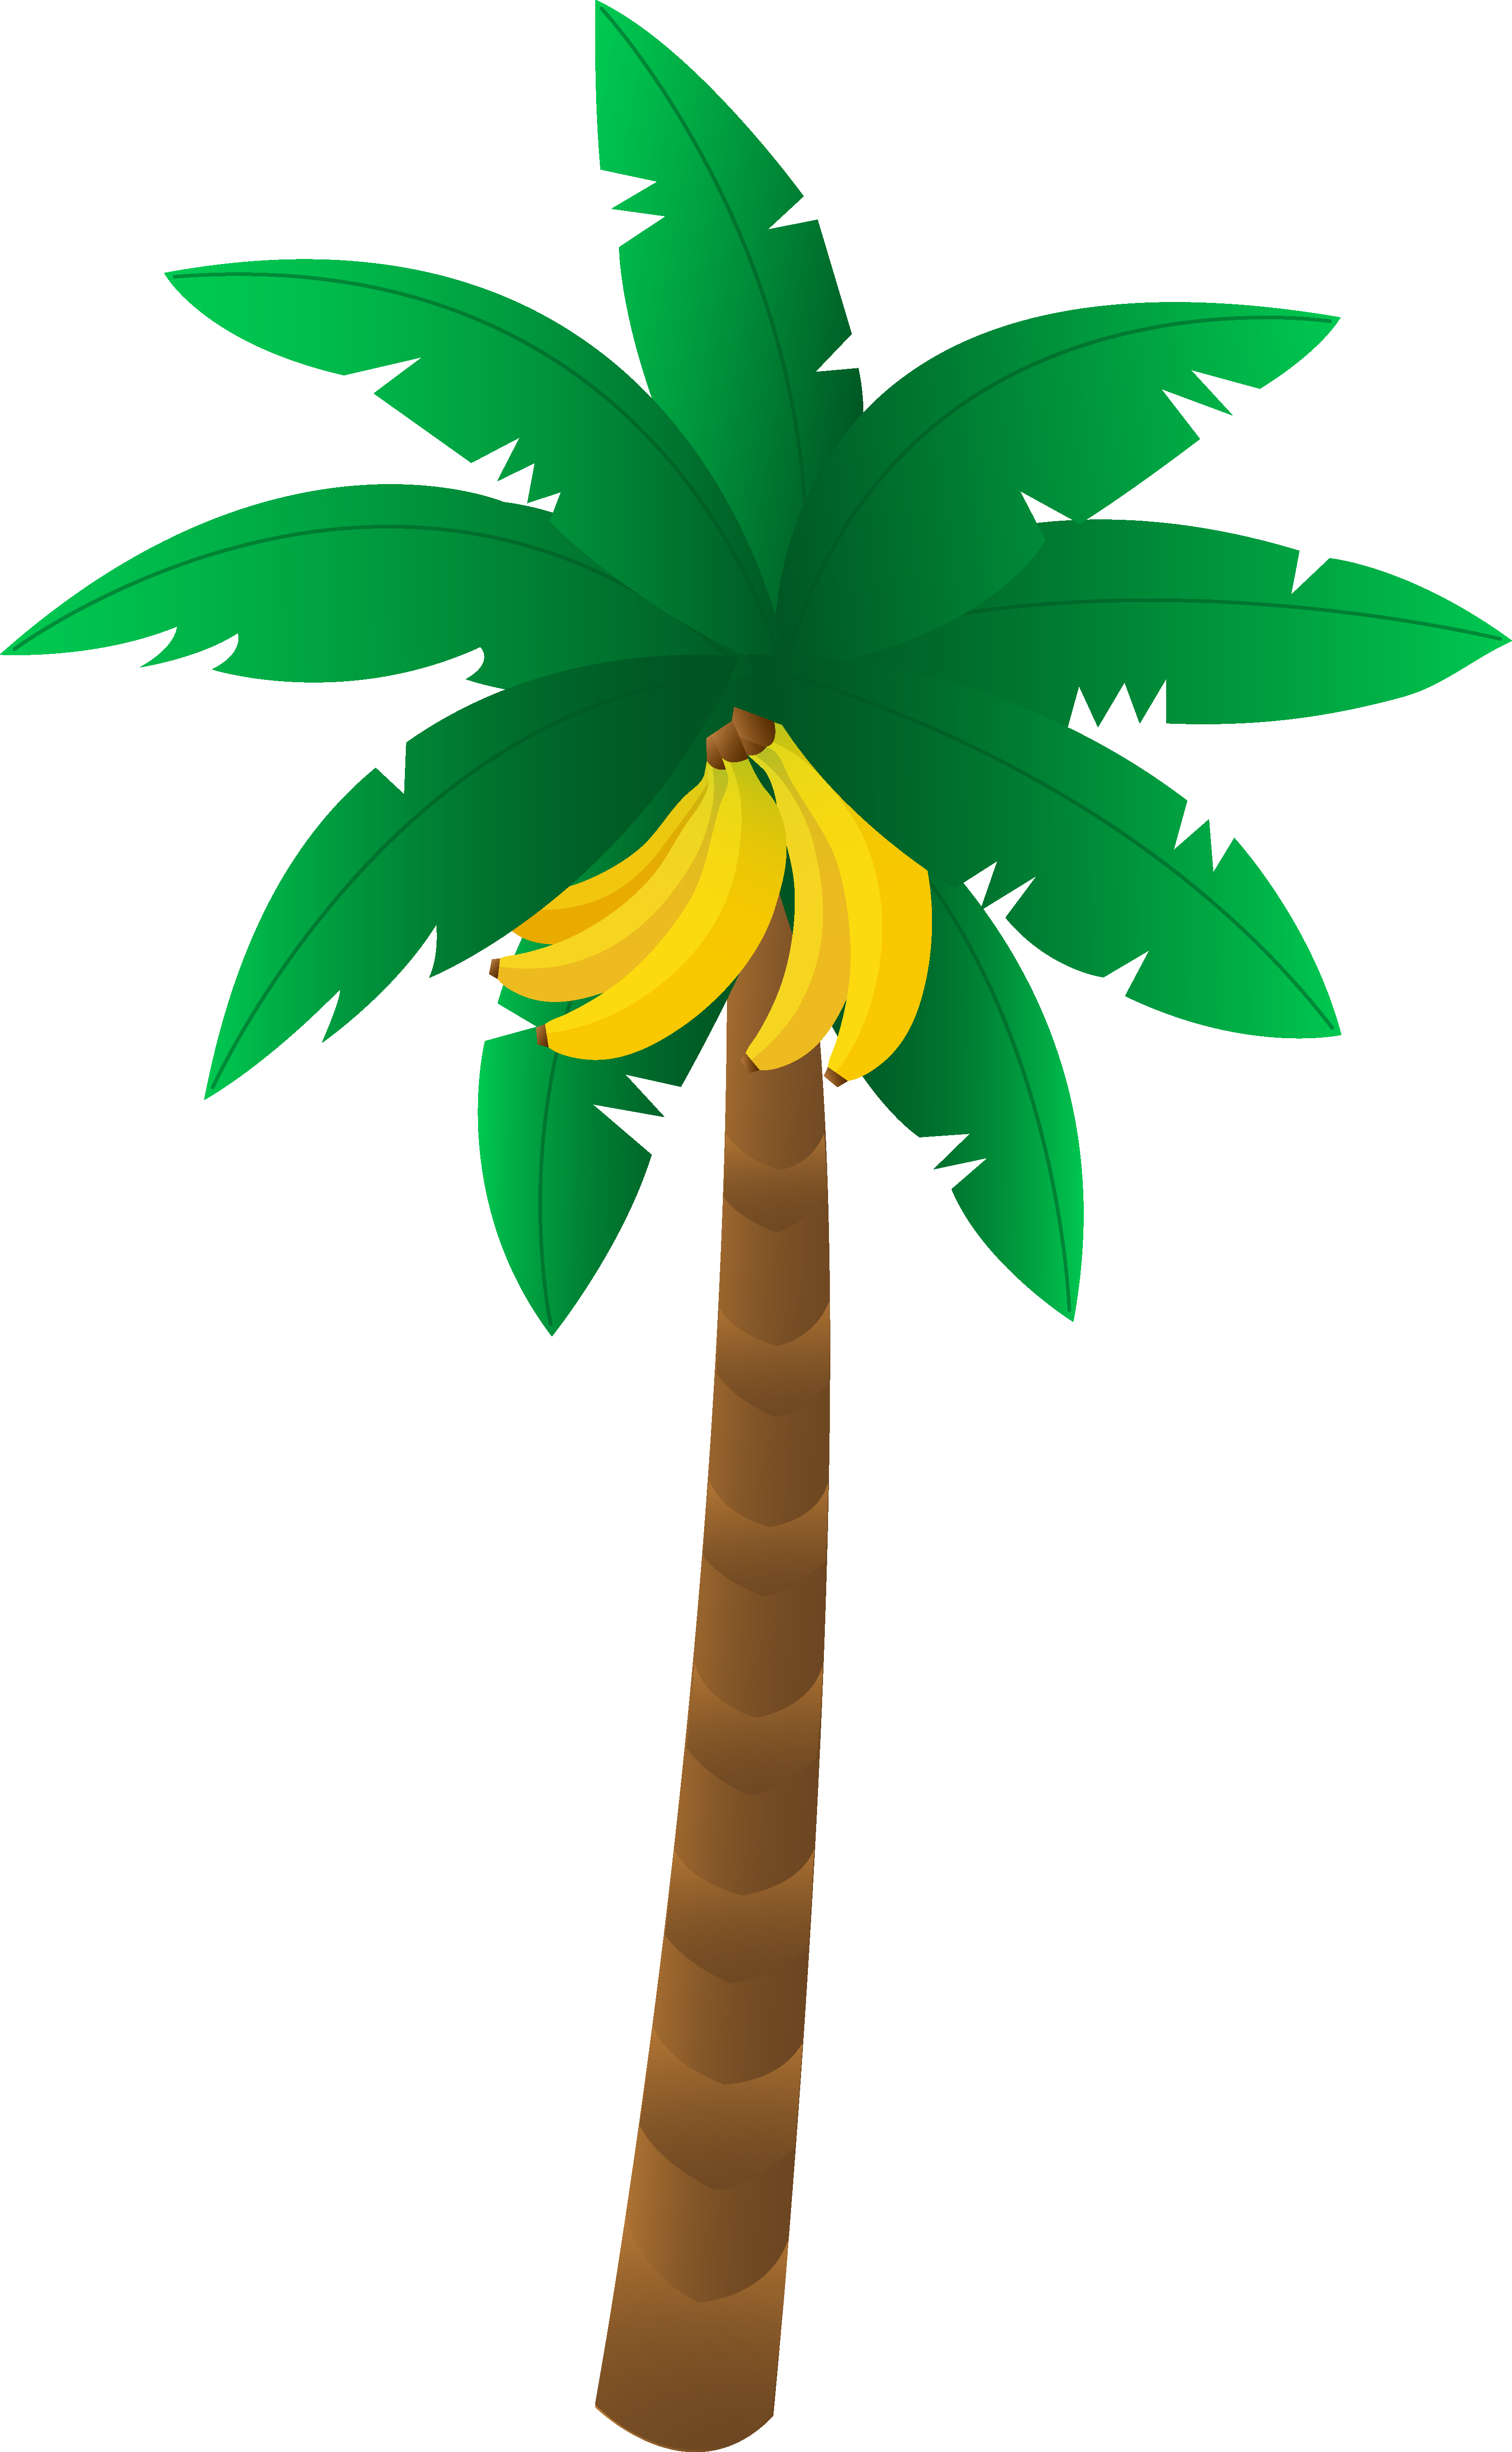 Tropical Banana Tree.